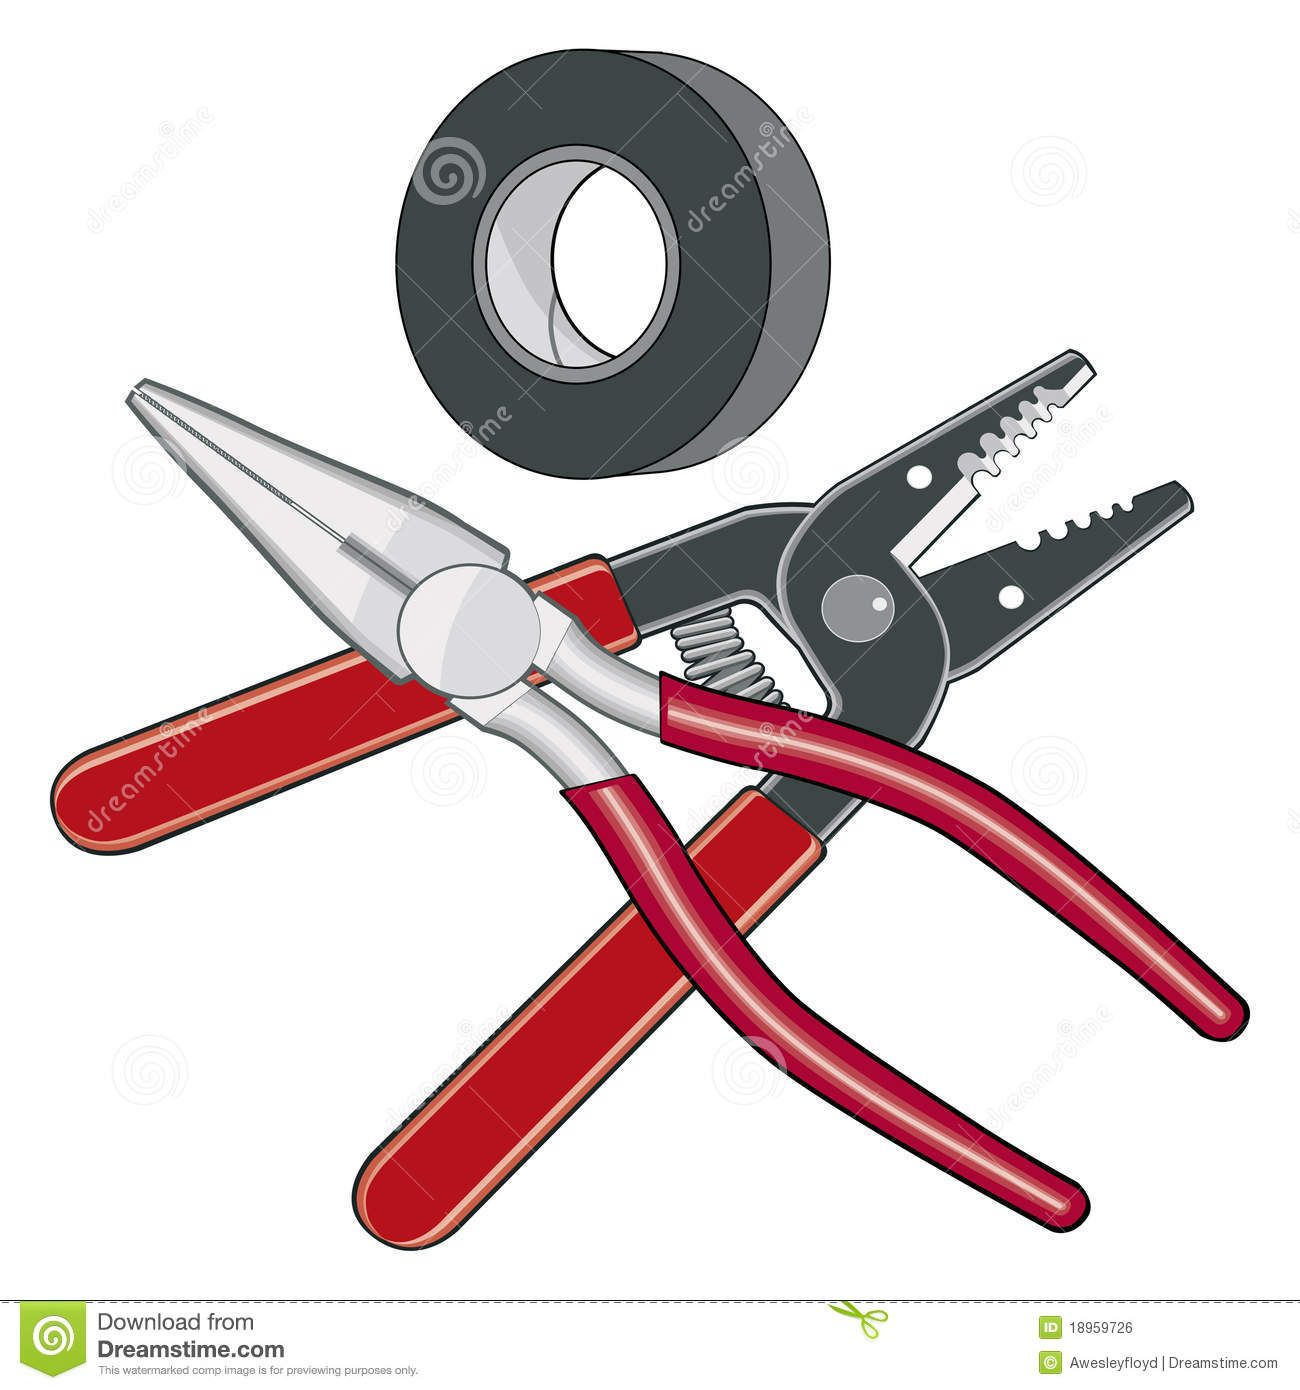 Electrical tools clipart svg library Electrician Tools Logo Royalty Free Stock Image - Image: 18959726 ... svg library